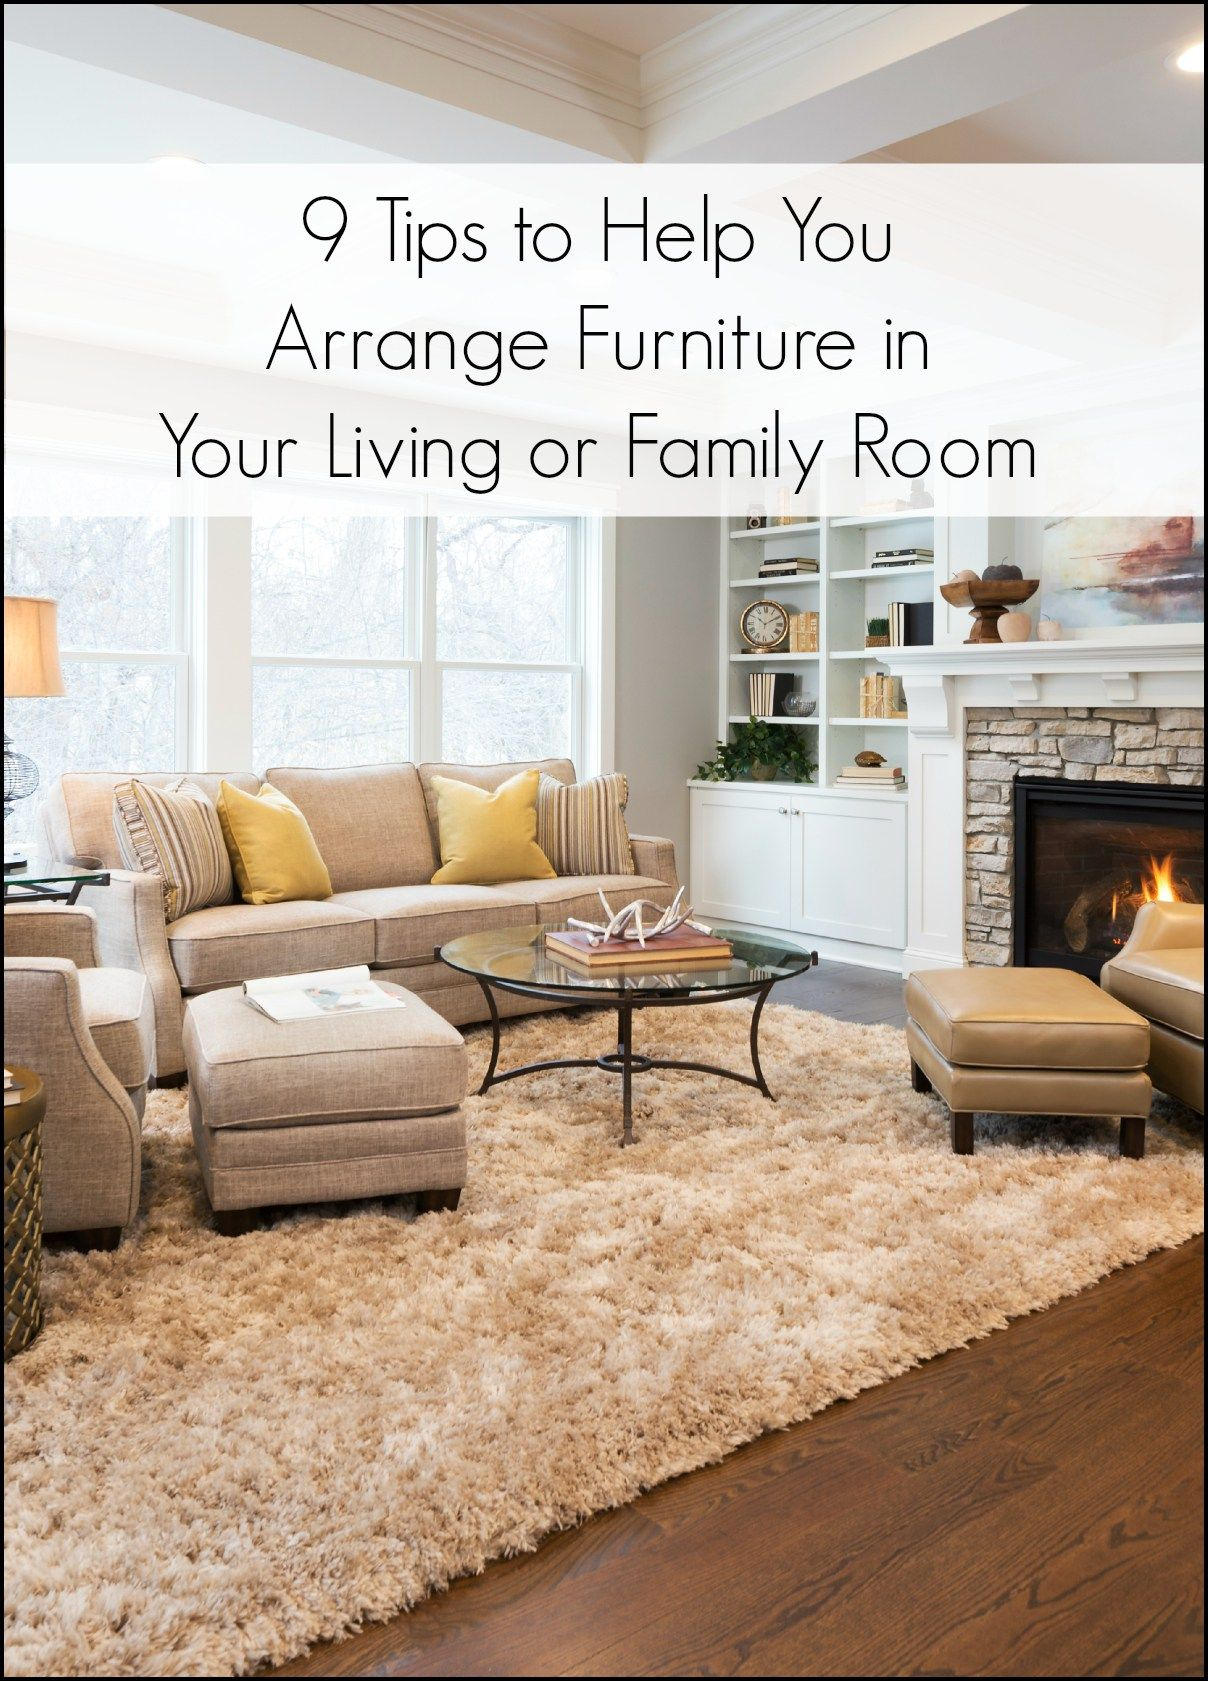 9 tips for arranging furniture in a living room or family Arrange living room furniture